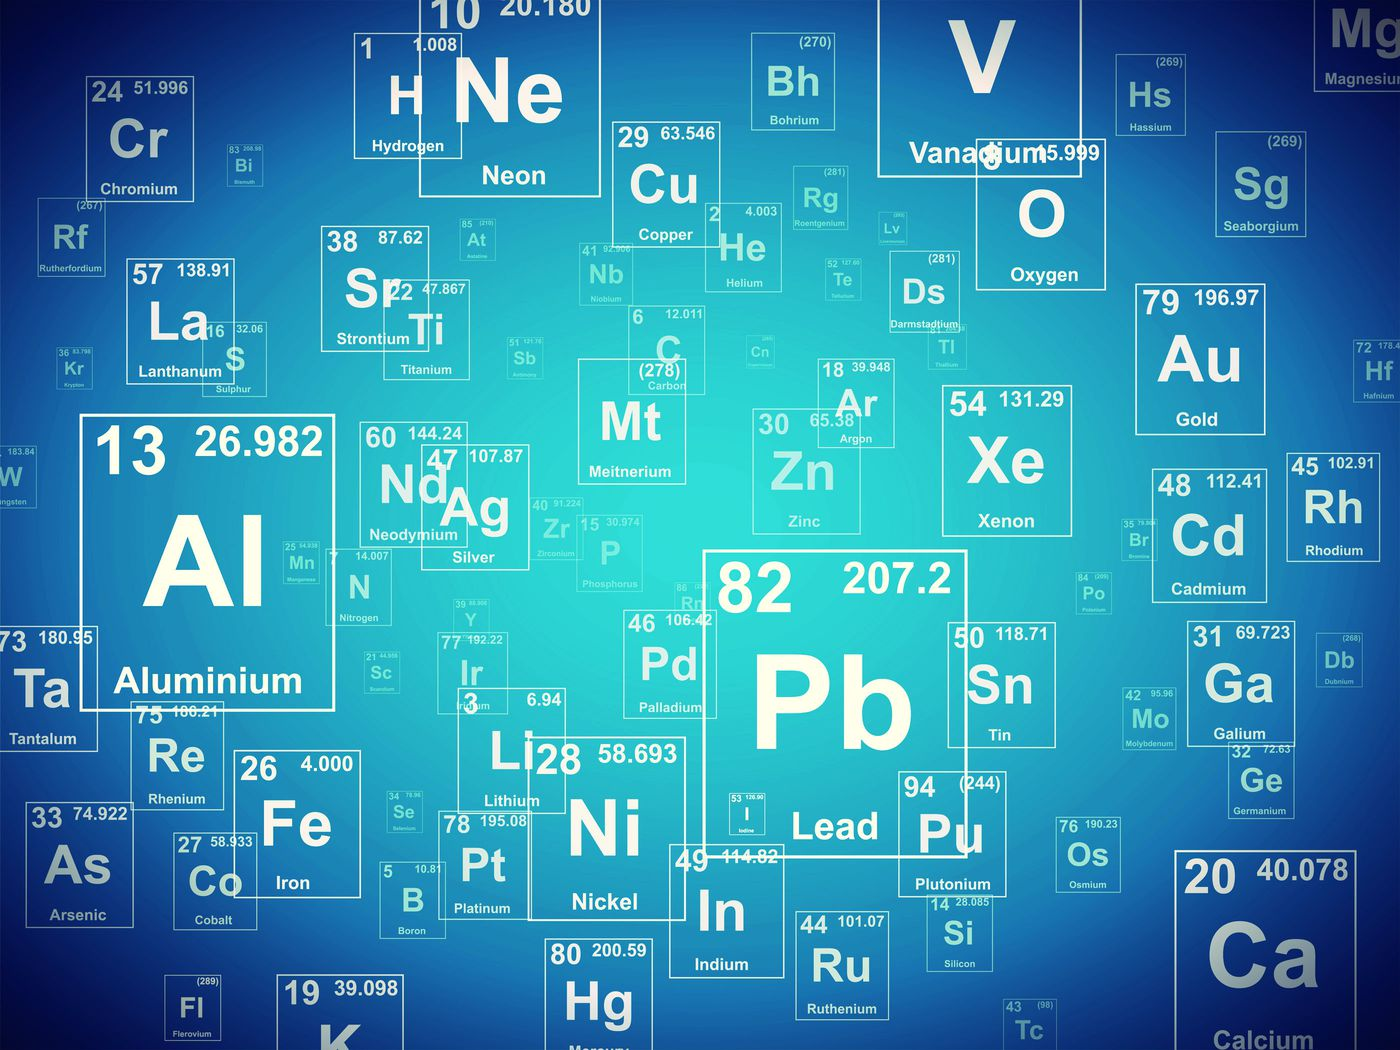 Here are the proposed names for the 4 newest elements on the here are the proposed names for the 4 newest elements on the periodic table vox urtaz Choice Image